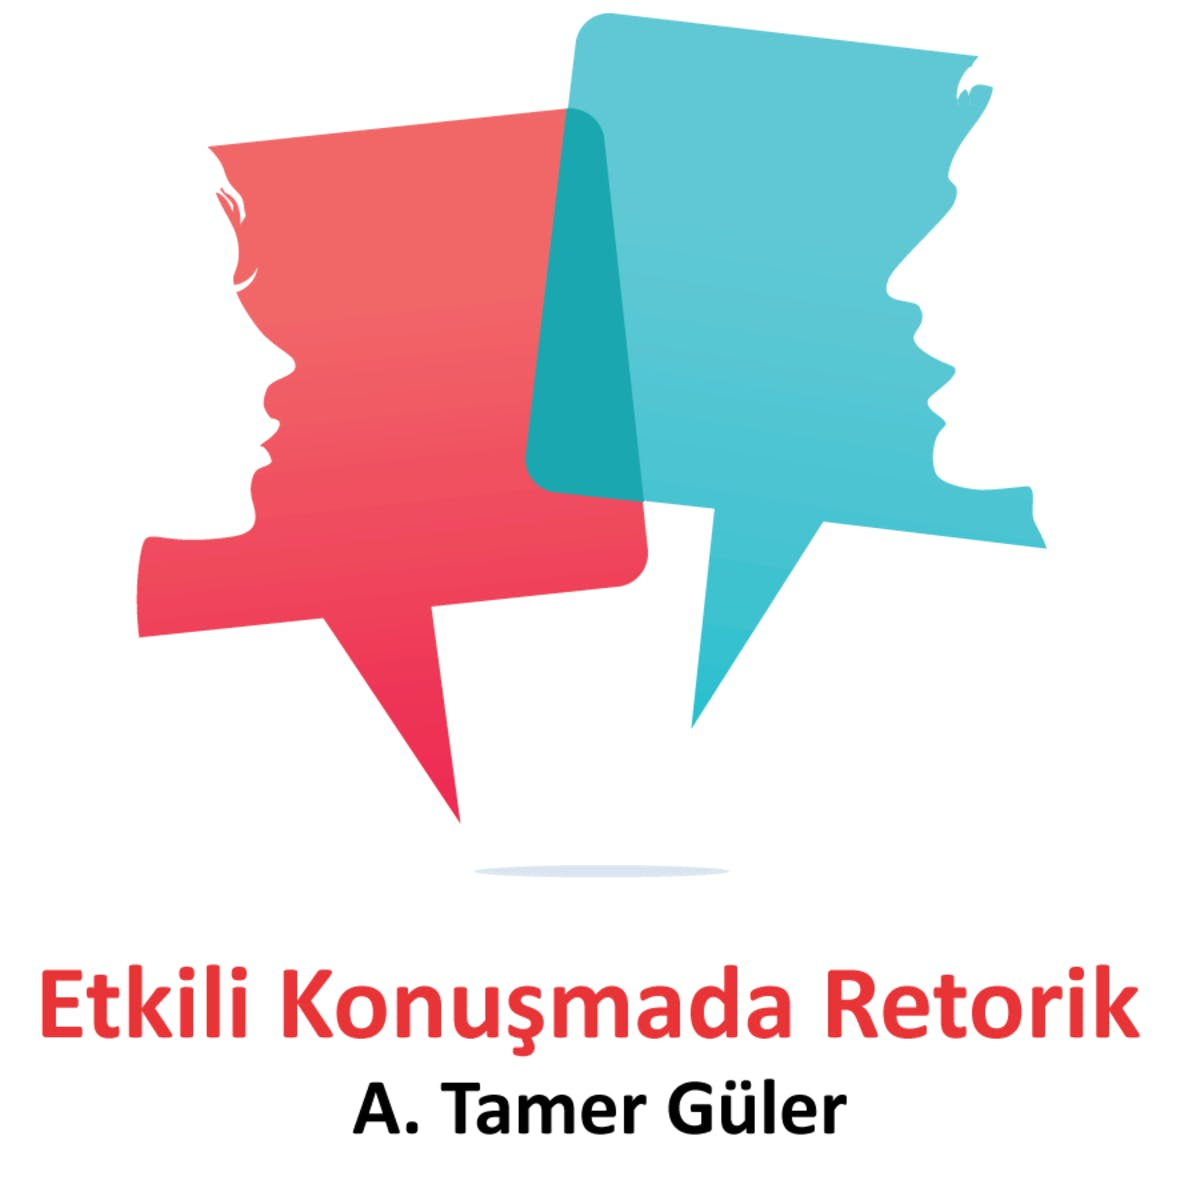 Etkili Konuşmada Retorik (Rhetoric in Effective Speaking)